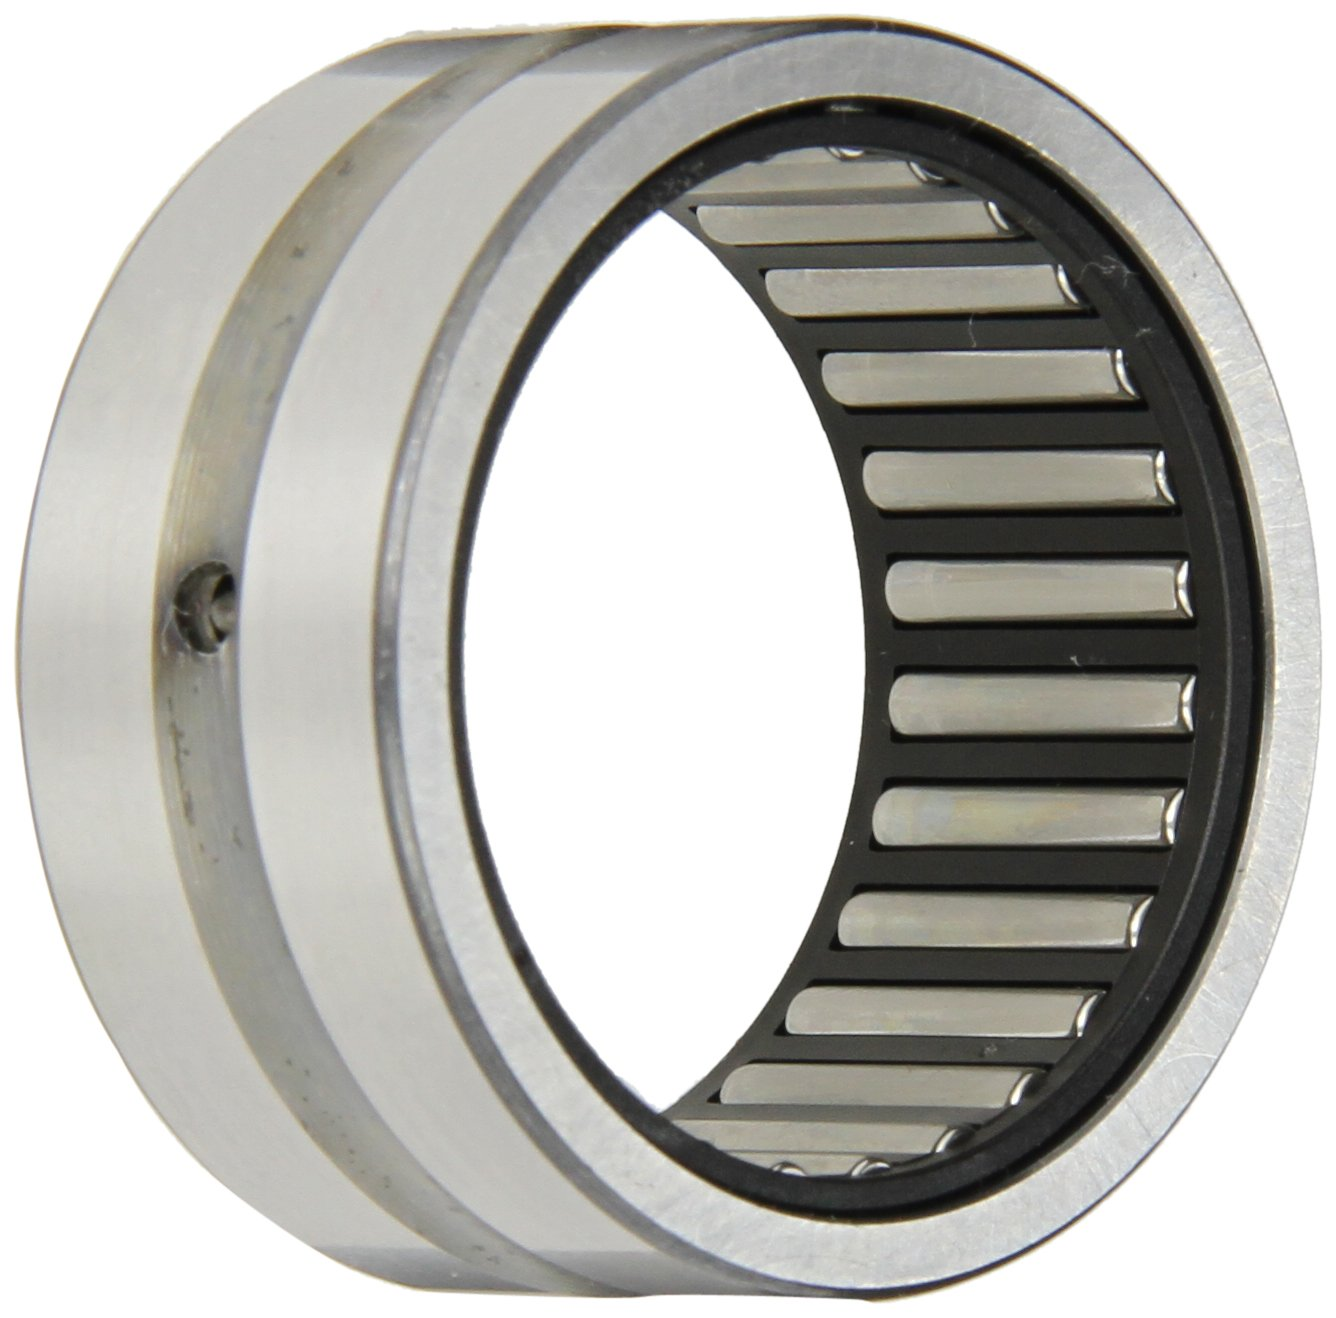 INA NK35/20 Needle Roller Bearing, Outer Ring and Roller, Steel Cage, Open End, Oil Hole, Metric, 35mm ID, 45mm OD, 20mm Width, 12000rpm Maximum Rotational Speed